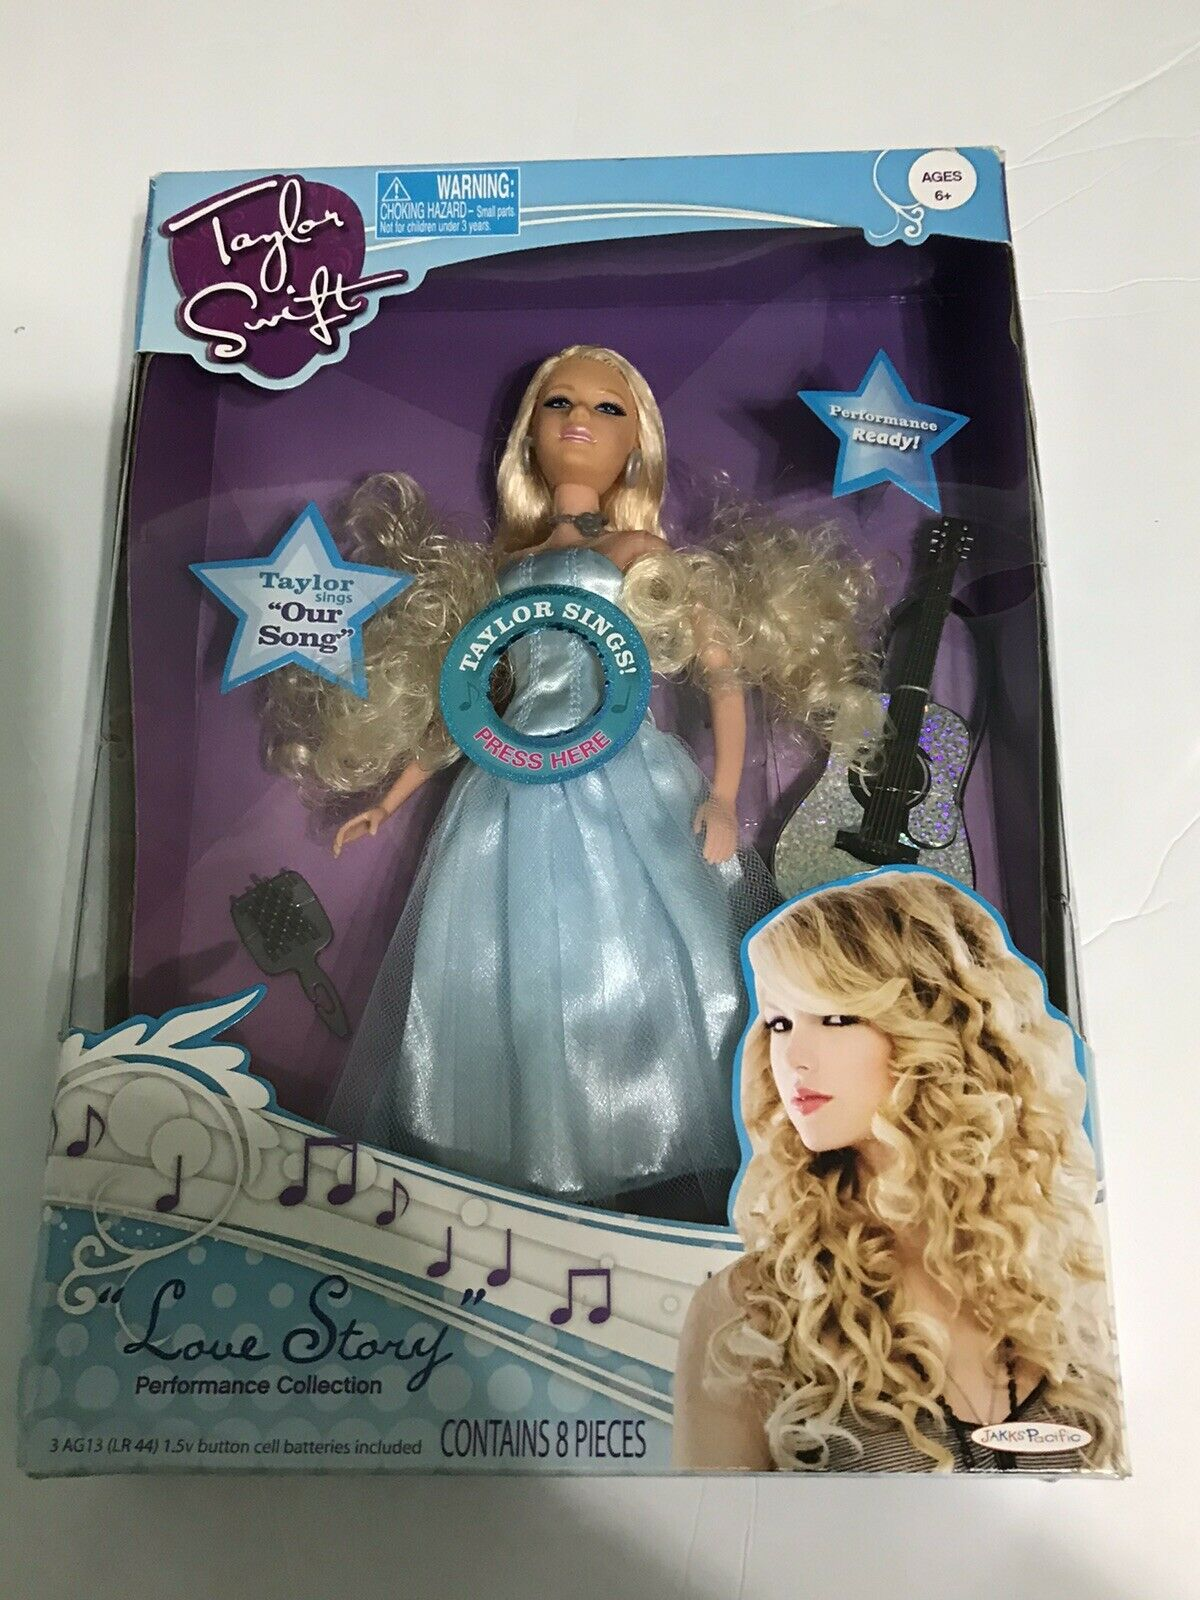 Opps Error Taylor Swift Love Story Performance Collection Jakks Pacific 2009 For Sale Online